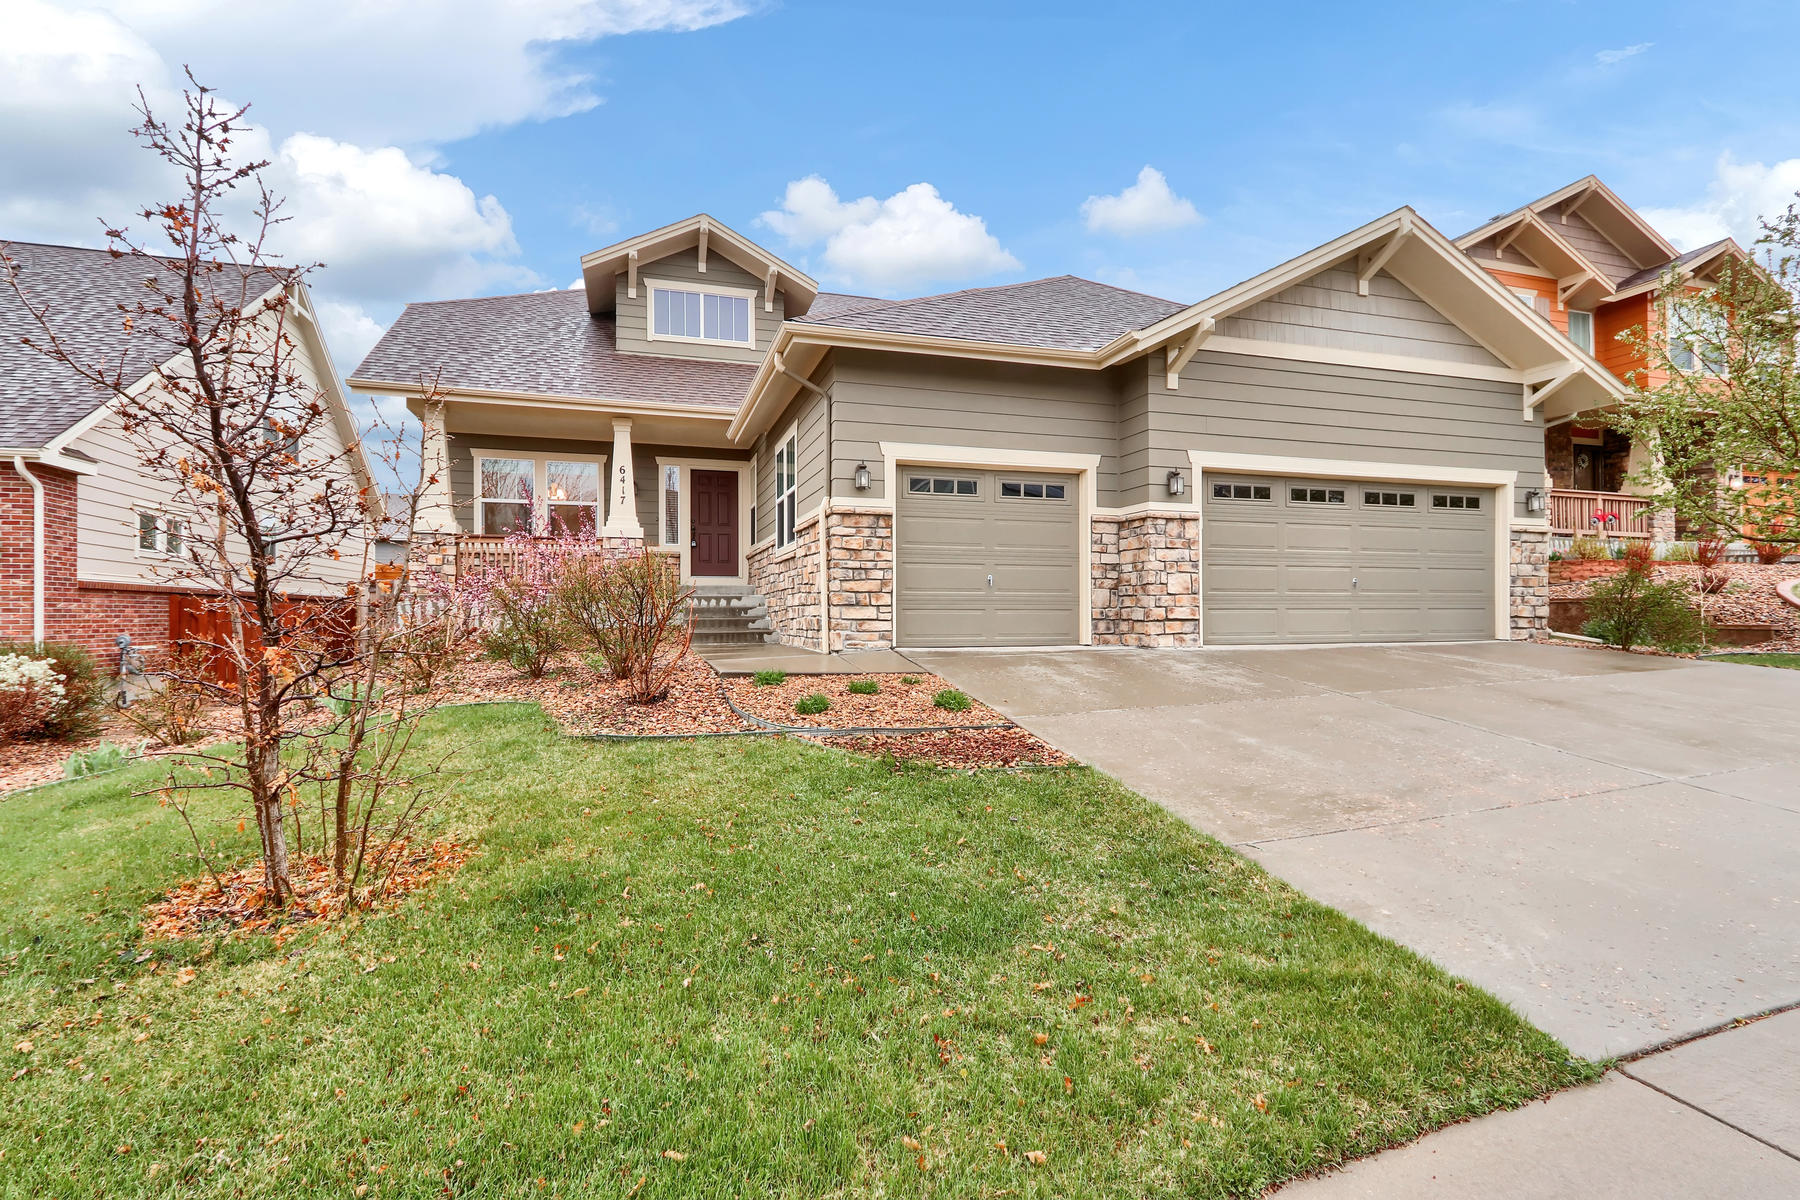 Single Family Homes for Sale at This award winning floor plan by Engle homes in Beacon Point shines 6417 S Oak Hill Cir Aurora, Colorado 80016 United States